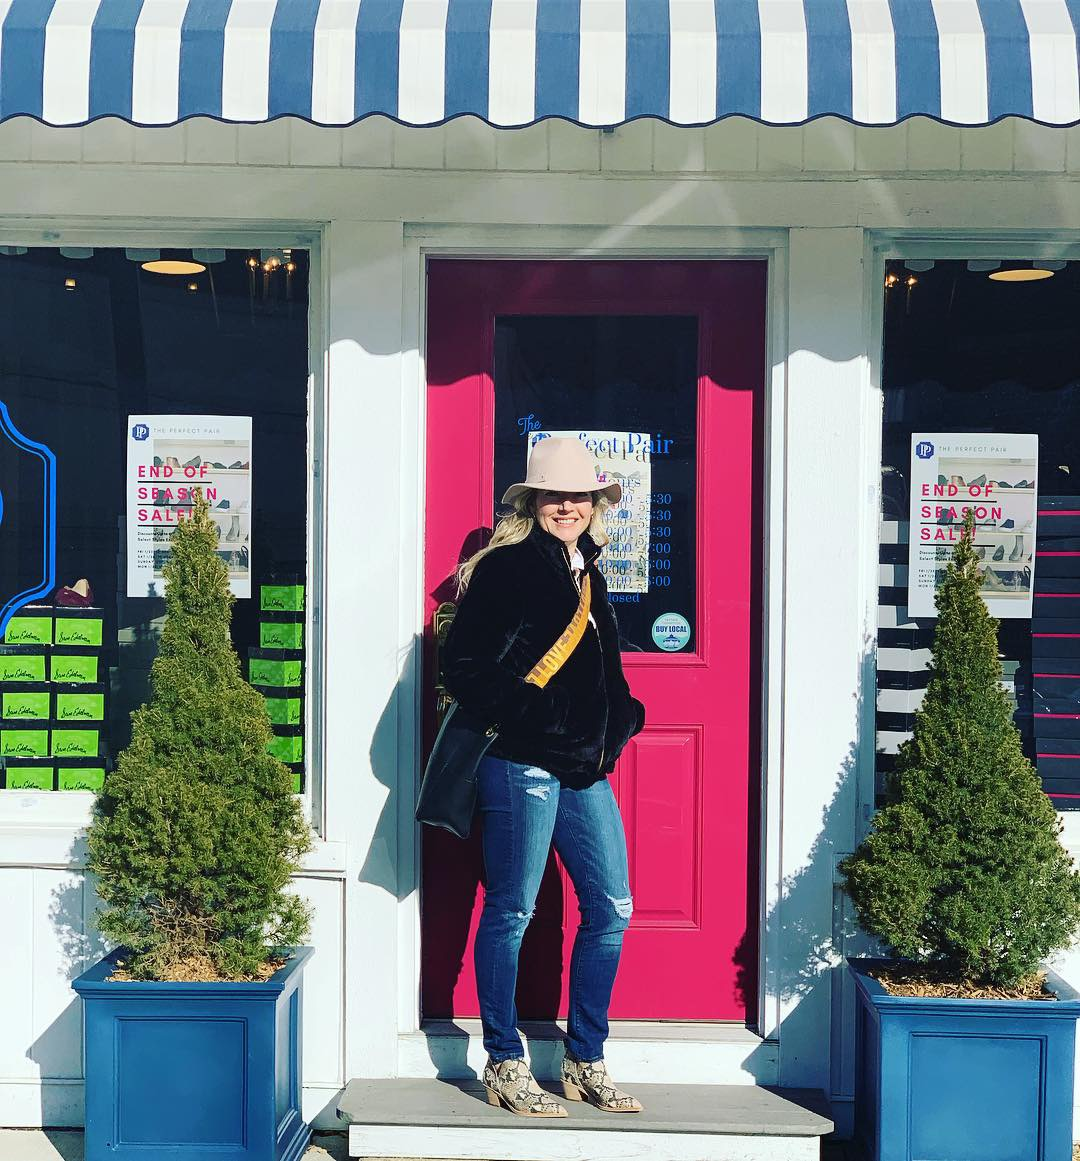 Anne Delorier   Owner Eleven11Biz (Westport, CT)